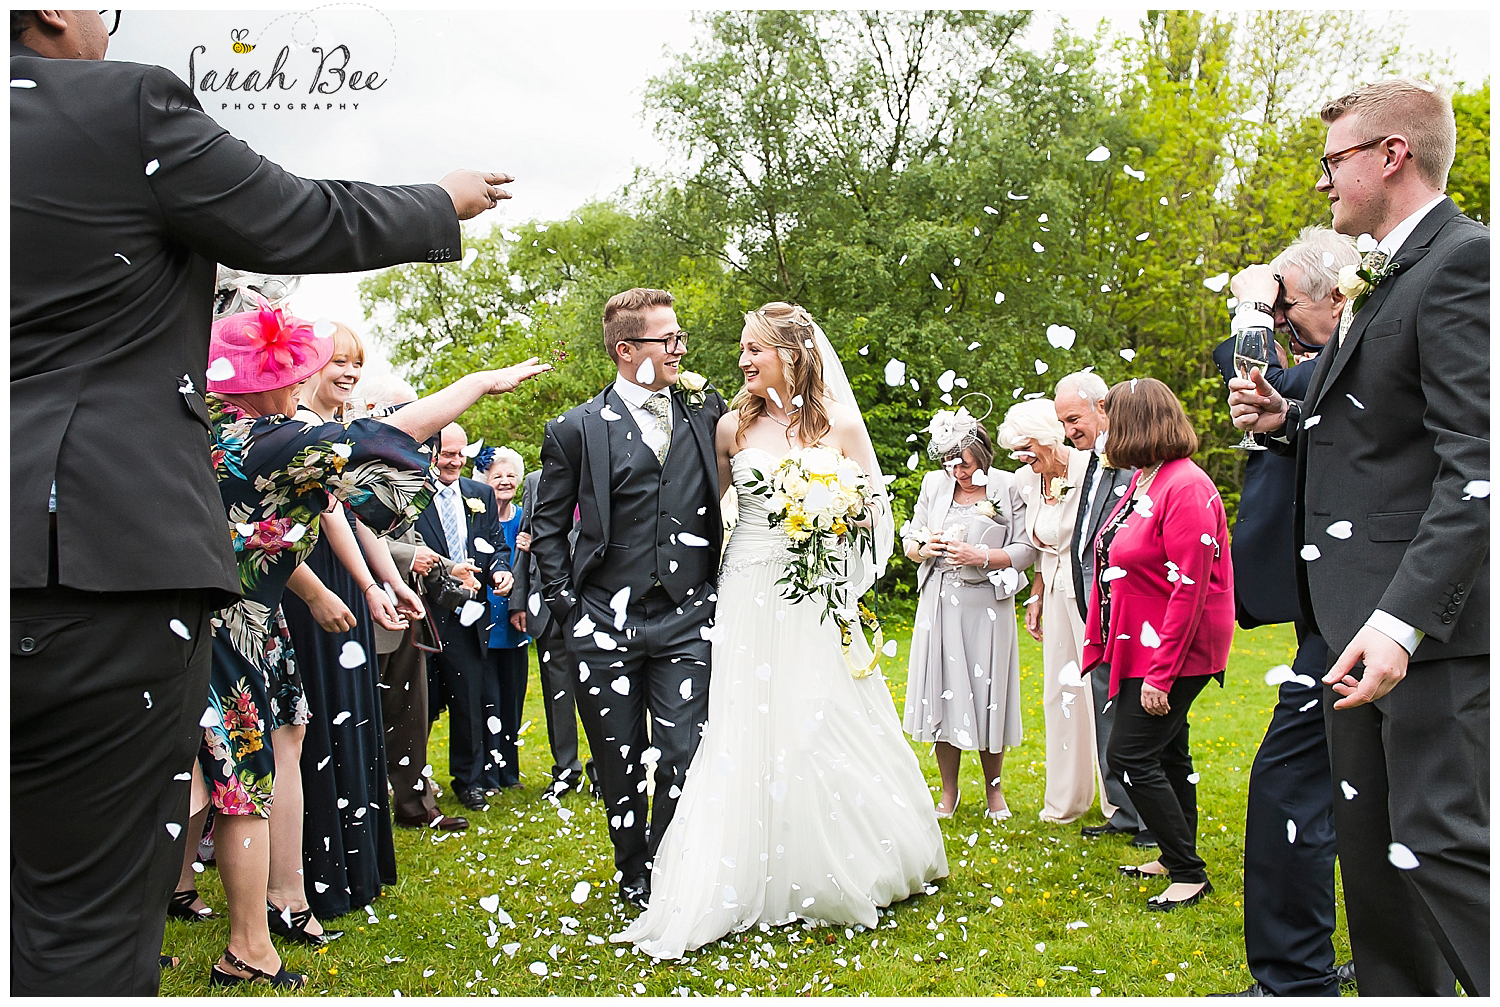 wedding photography with sarah bee photography, Peruga woodheys glossop, documentory photography wedding photographer_0191 copy.jpg